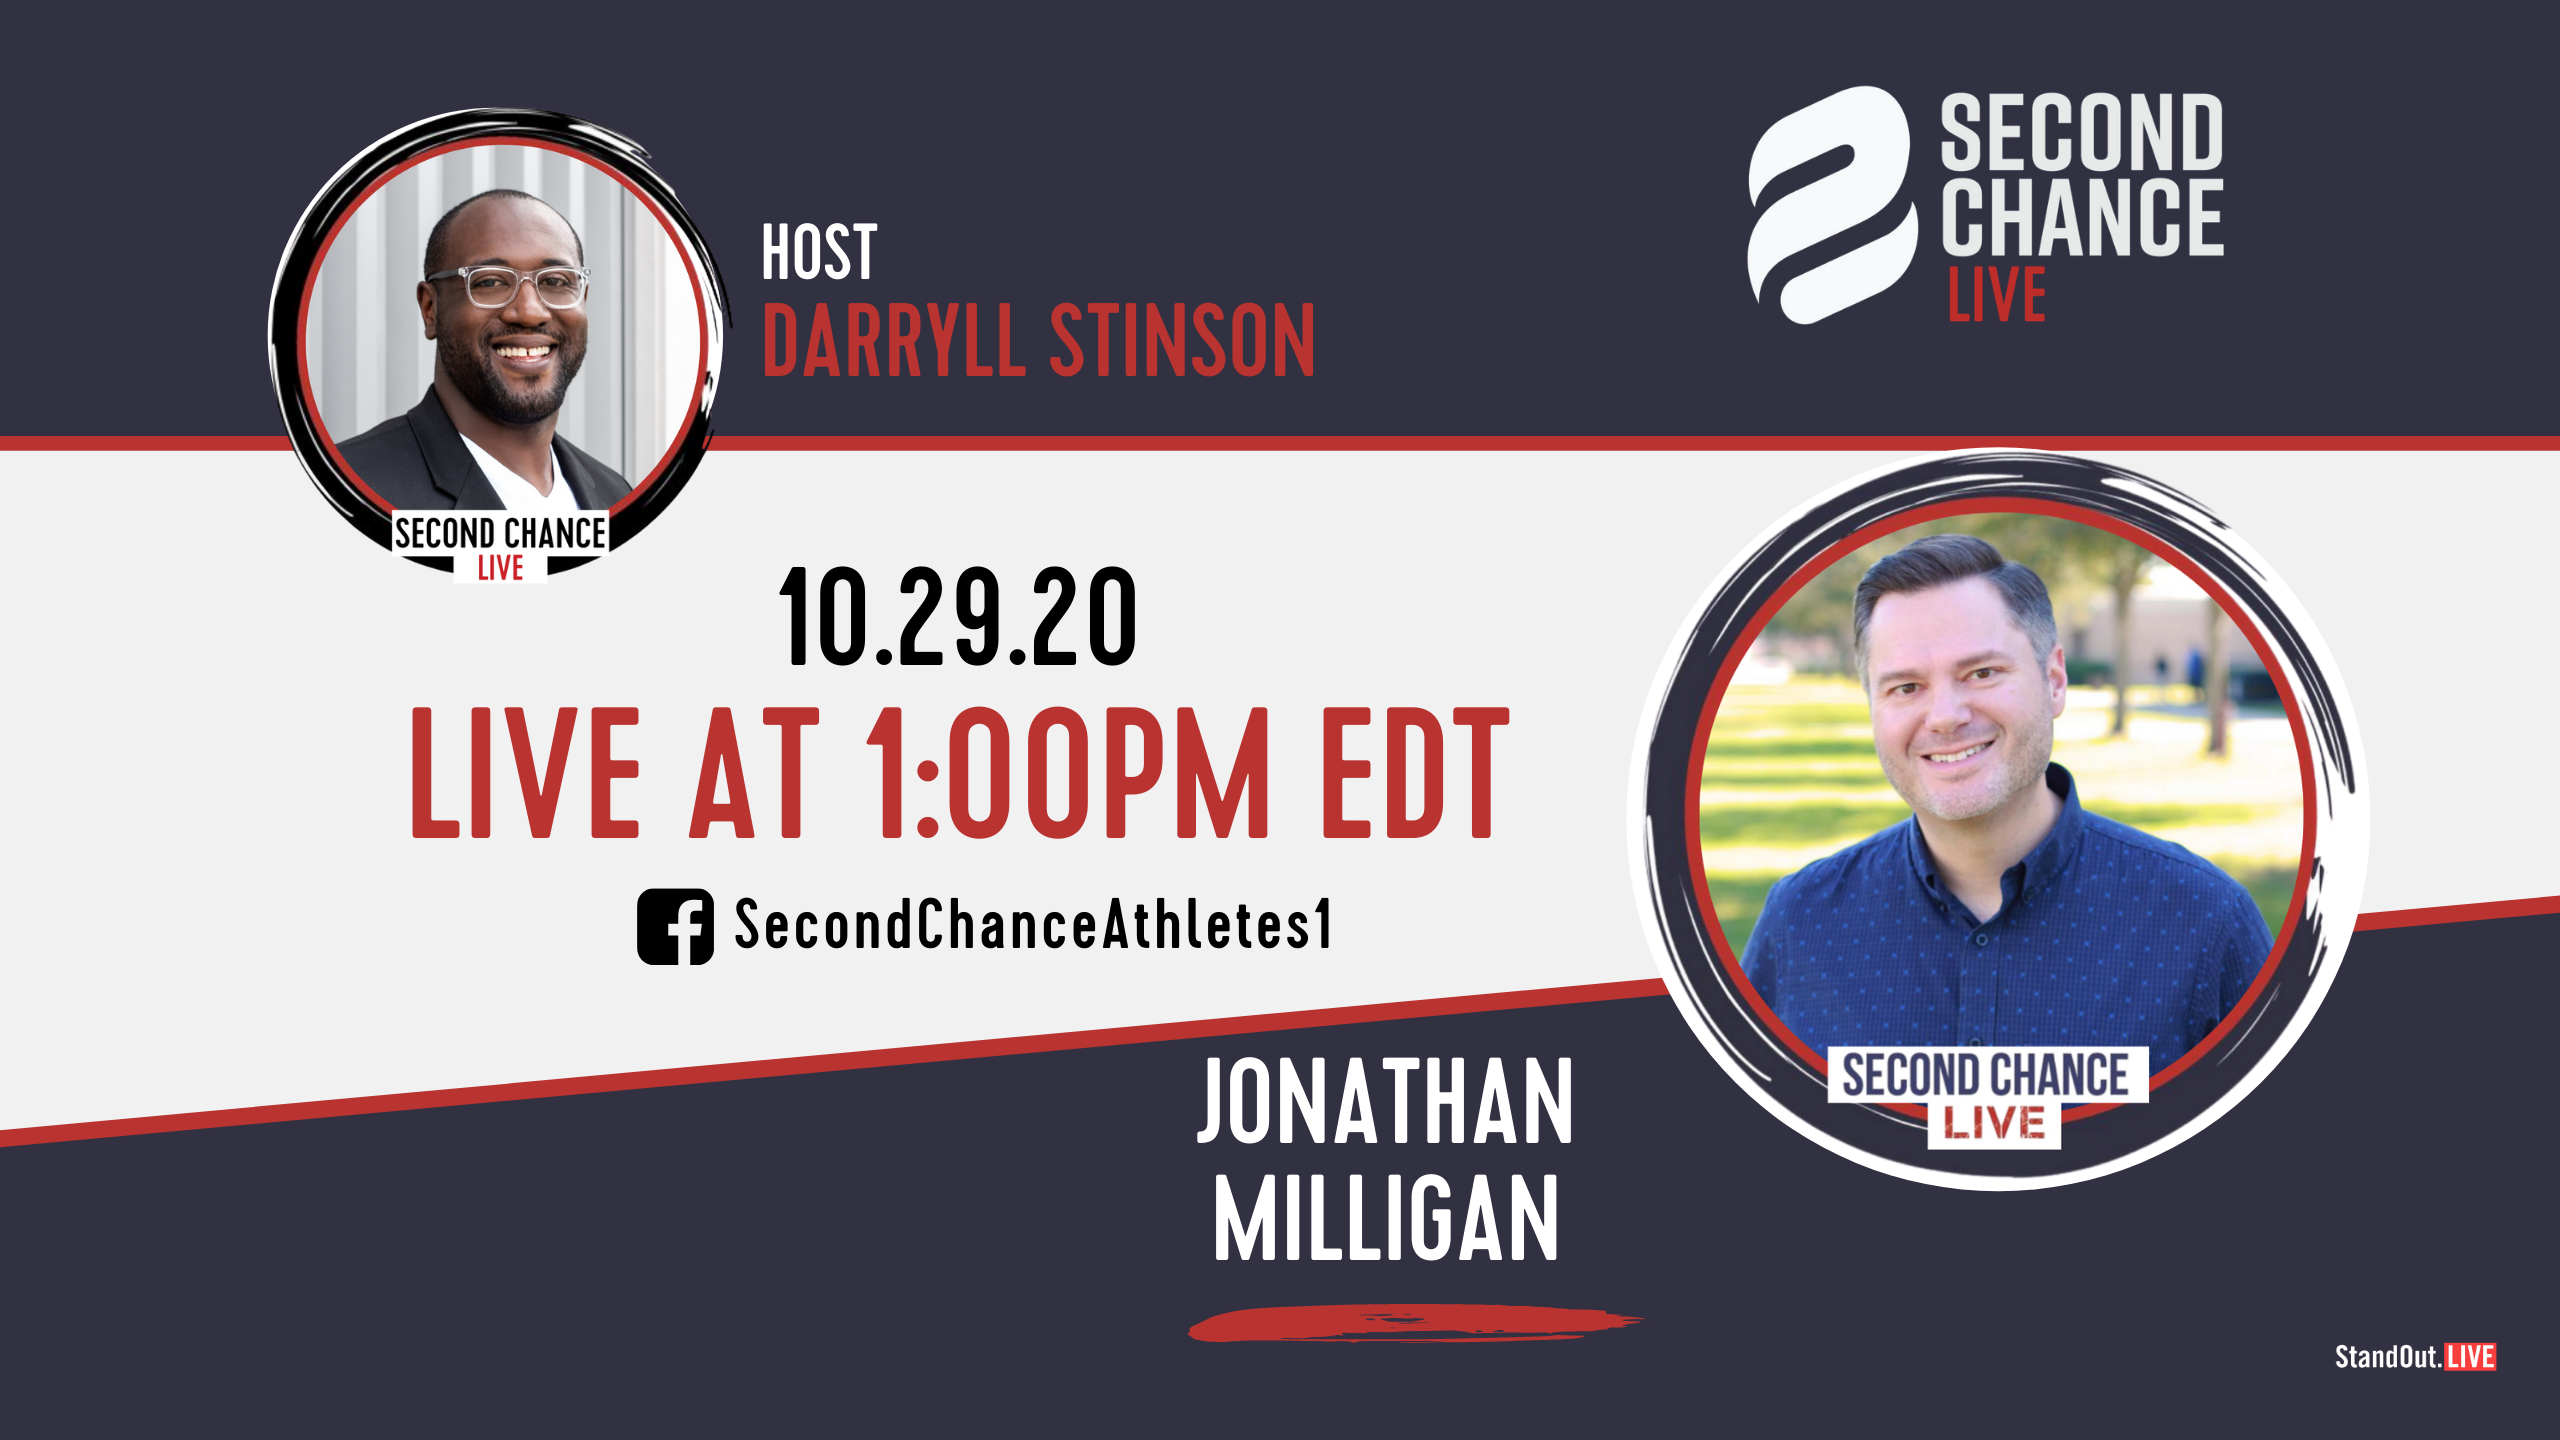 Second Chance LIVE -with Jonathan Milligan